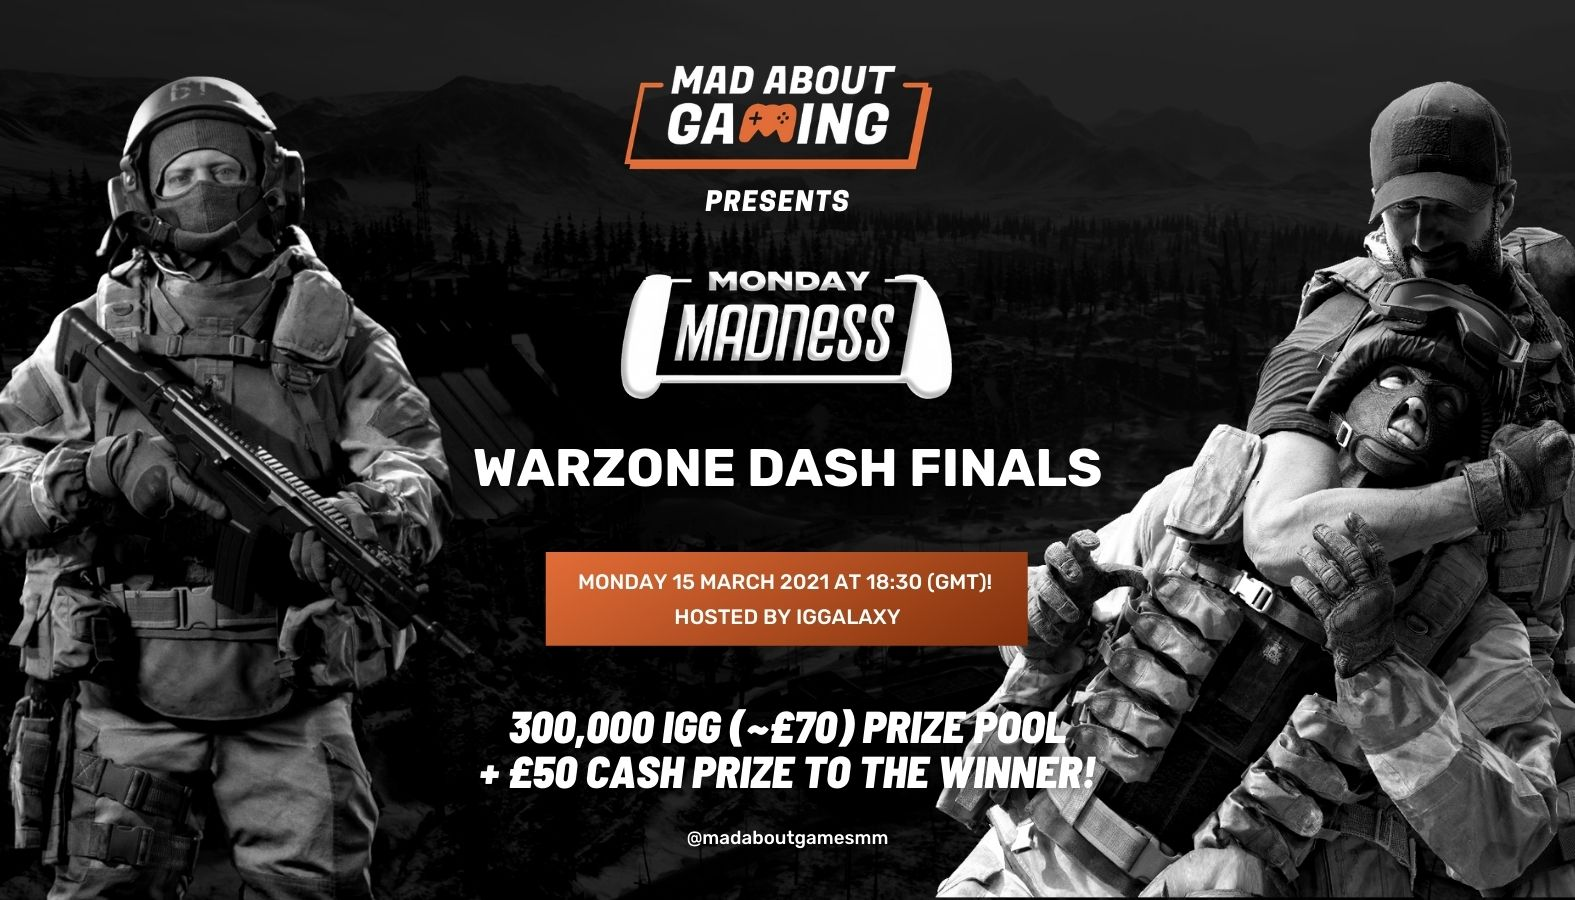 Mad About Gaming presents: Monday Madness Warzone Dash finals, powered by IGGalaxy!